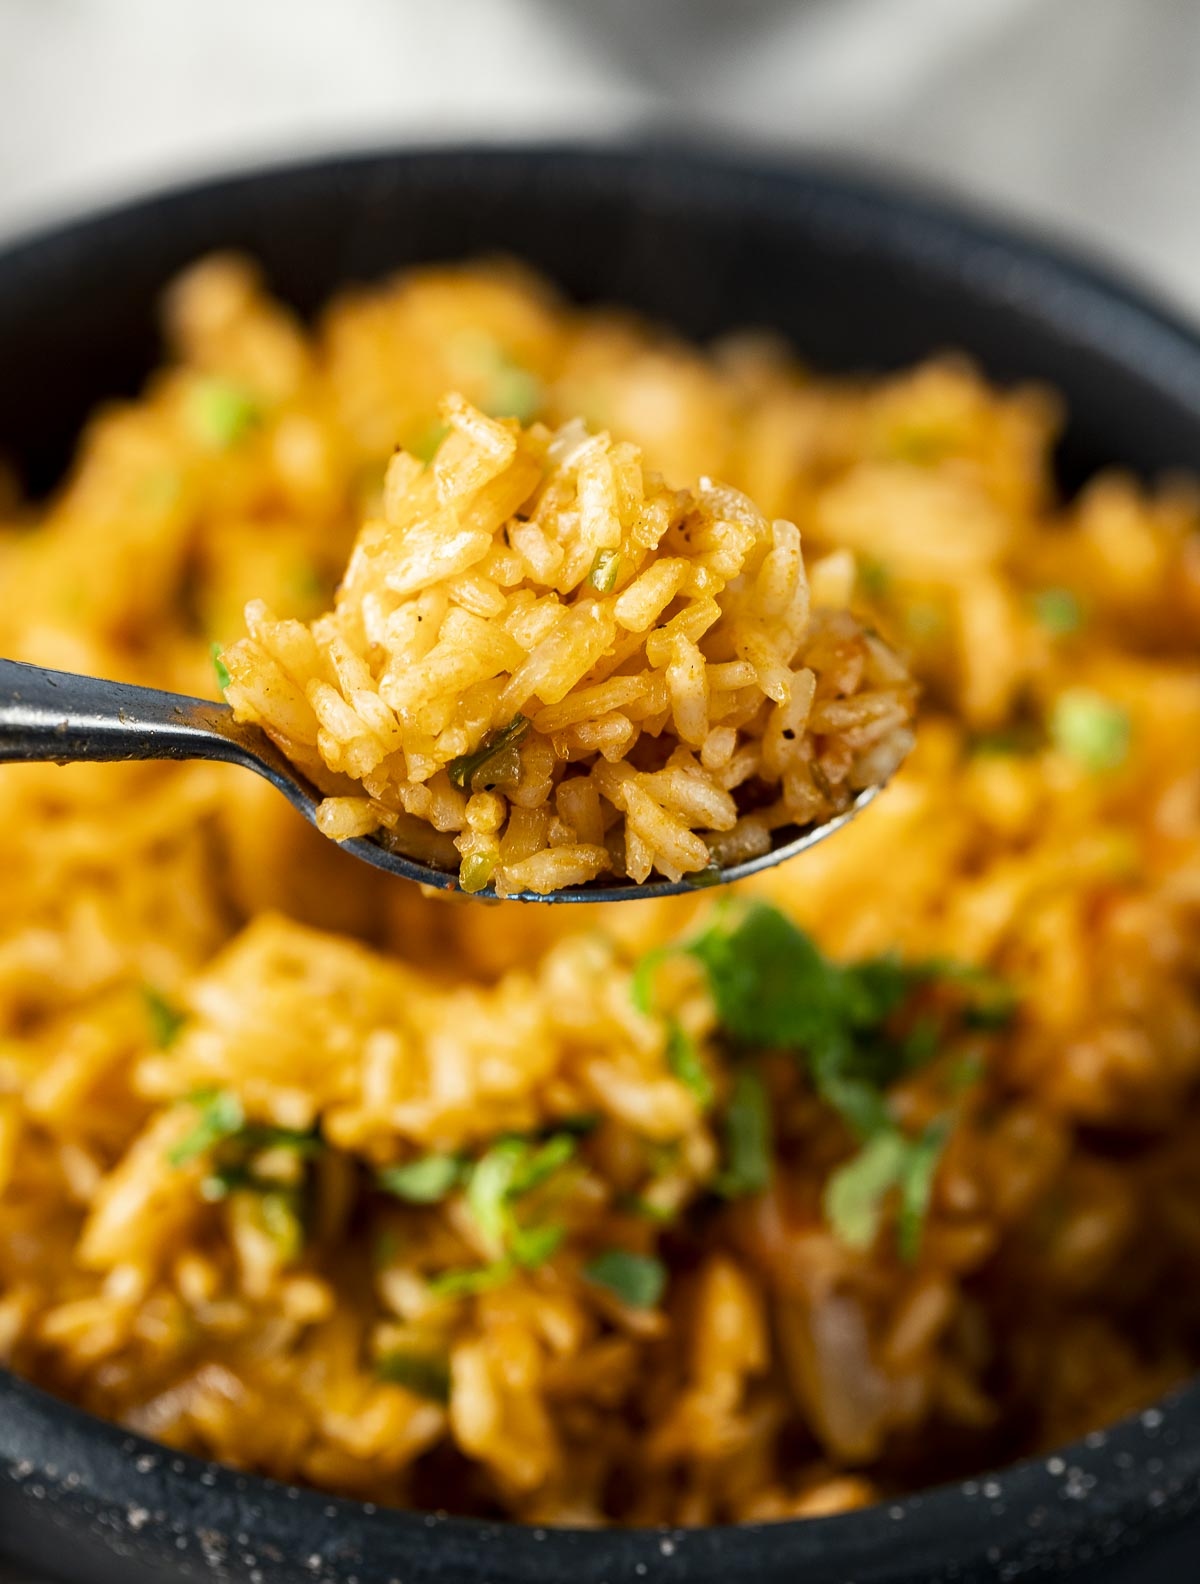 A close up of a spoonful of Spanish rice.